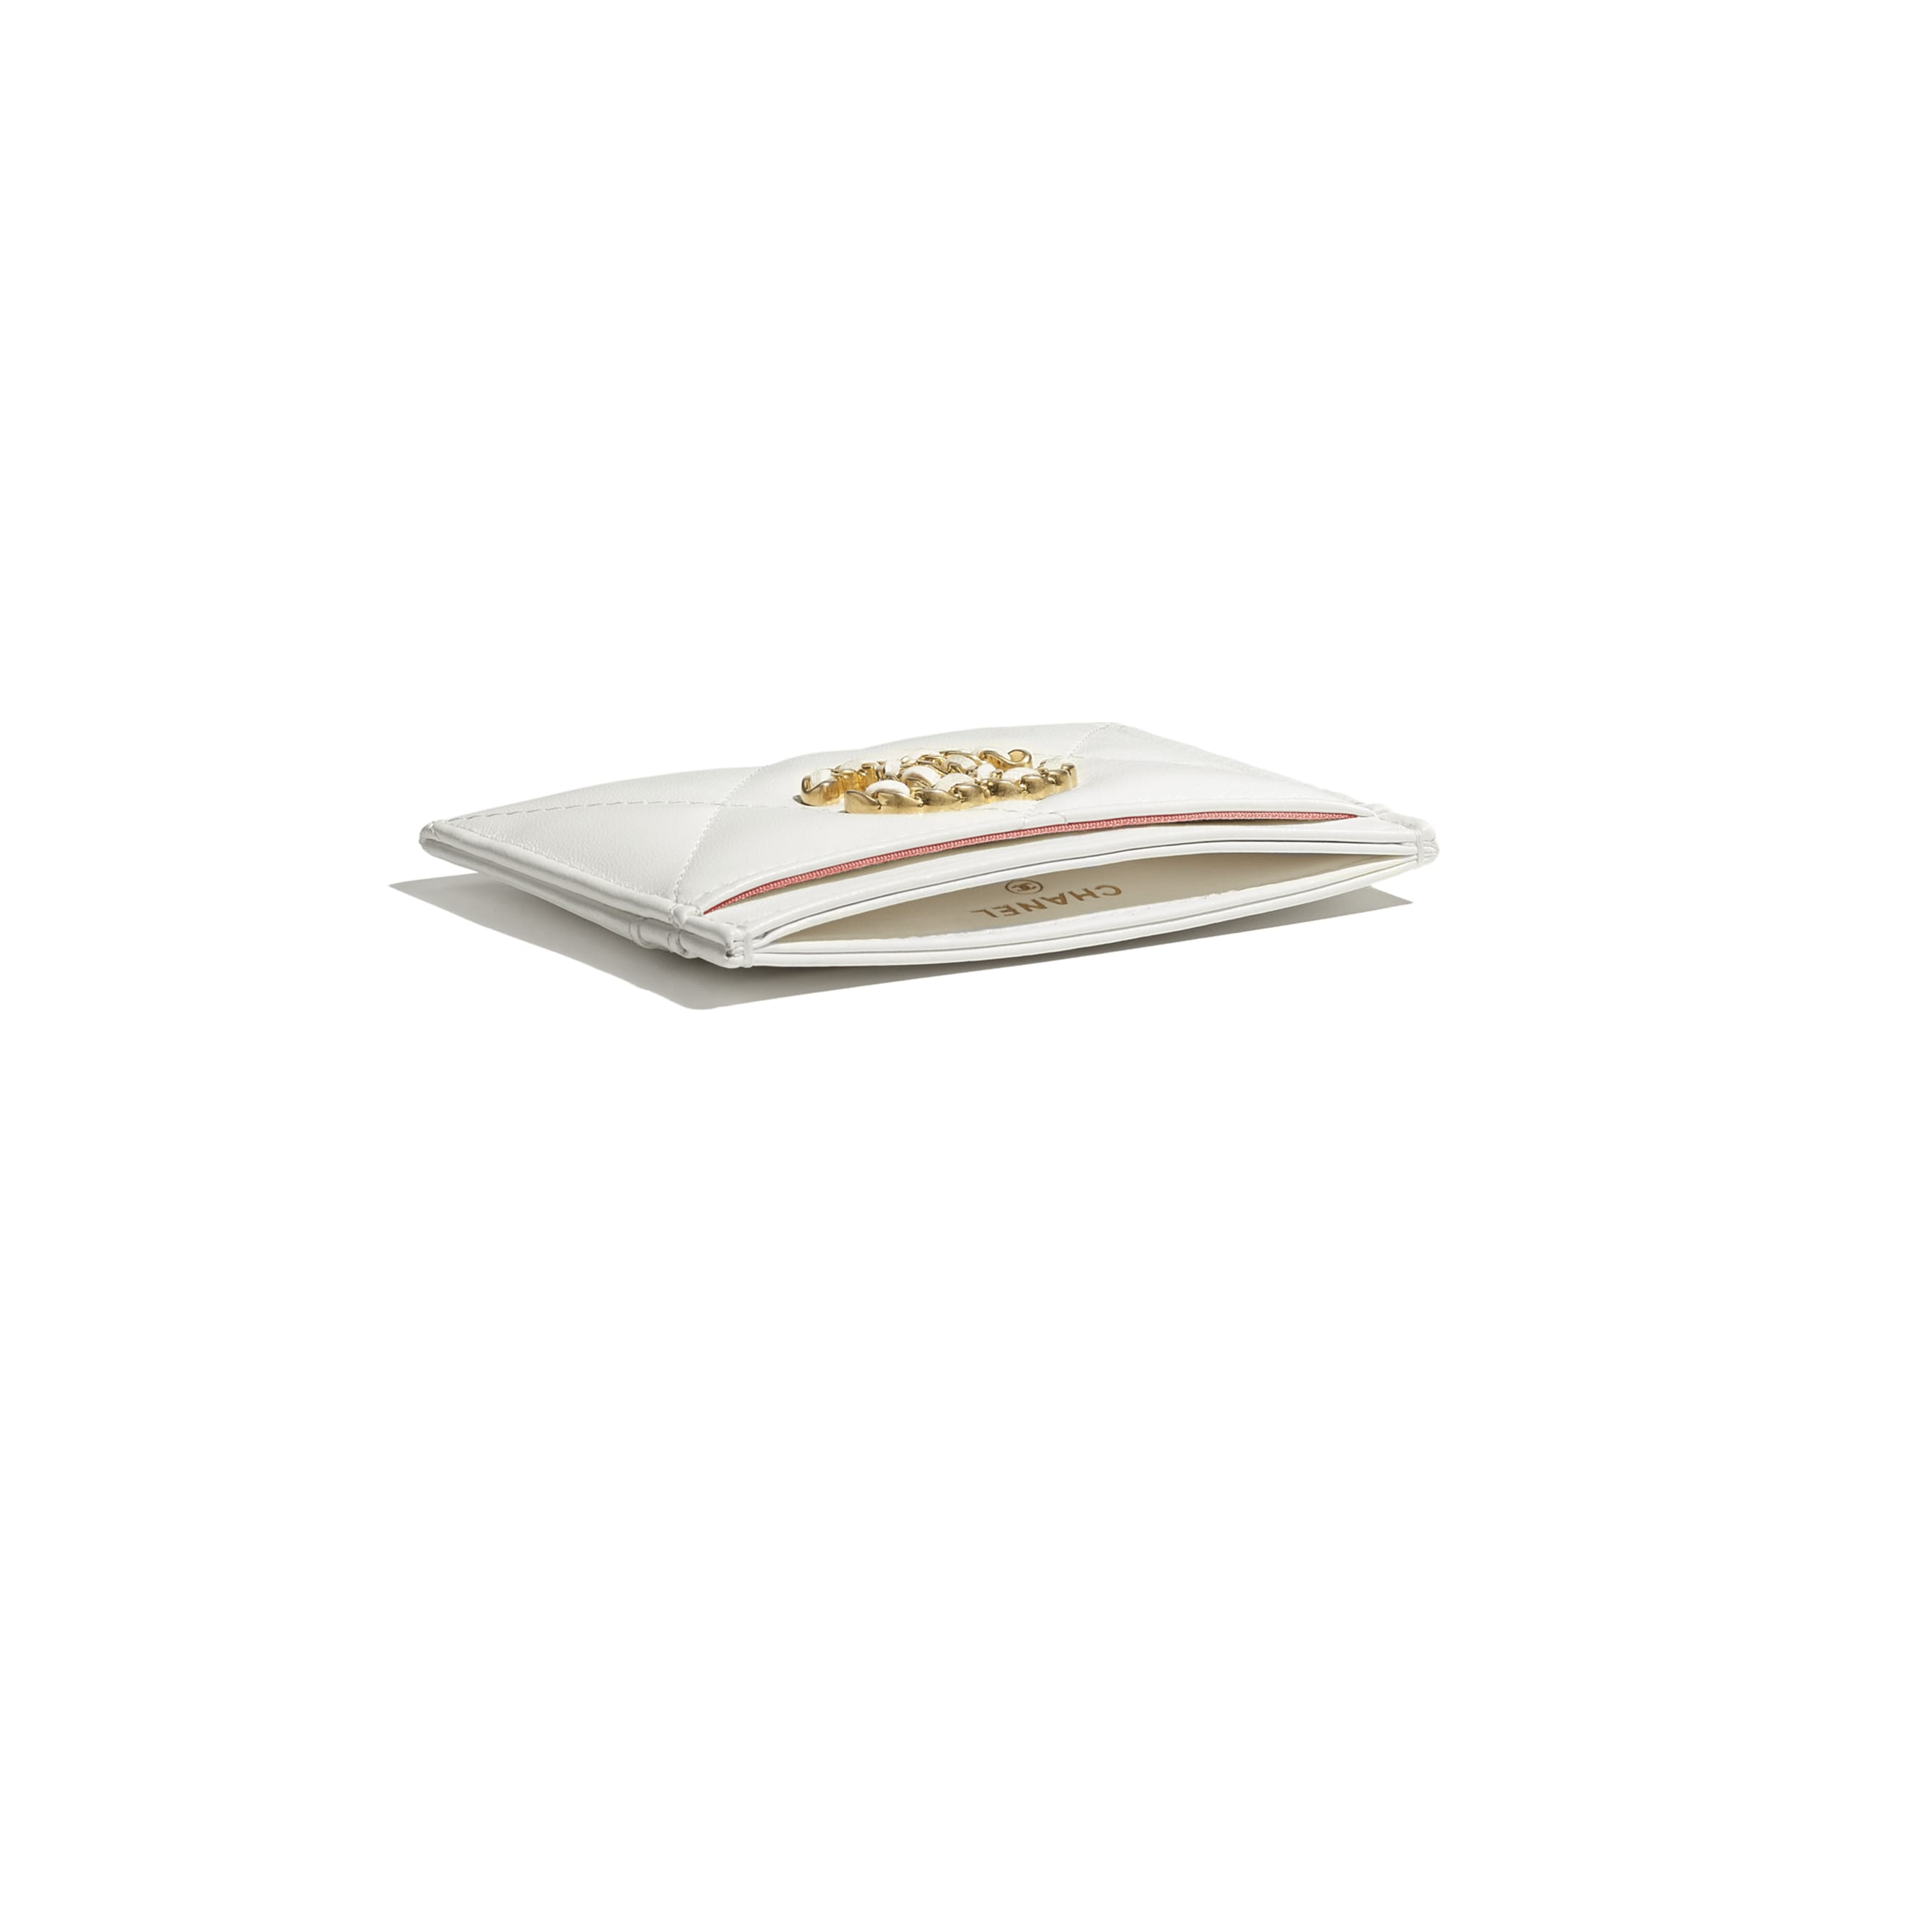 CHANEL 19 Card Holder - White - Lambskin, Gold-Tone, Silver-Tone & Ruthenium-Finish Metal - CHANEL - Extra view - see standard sized version